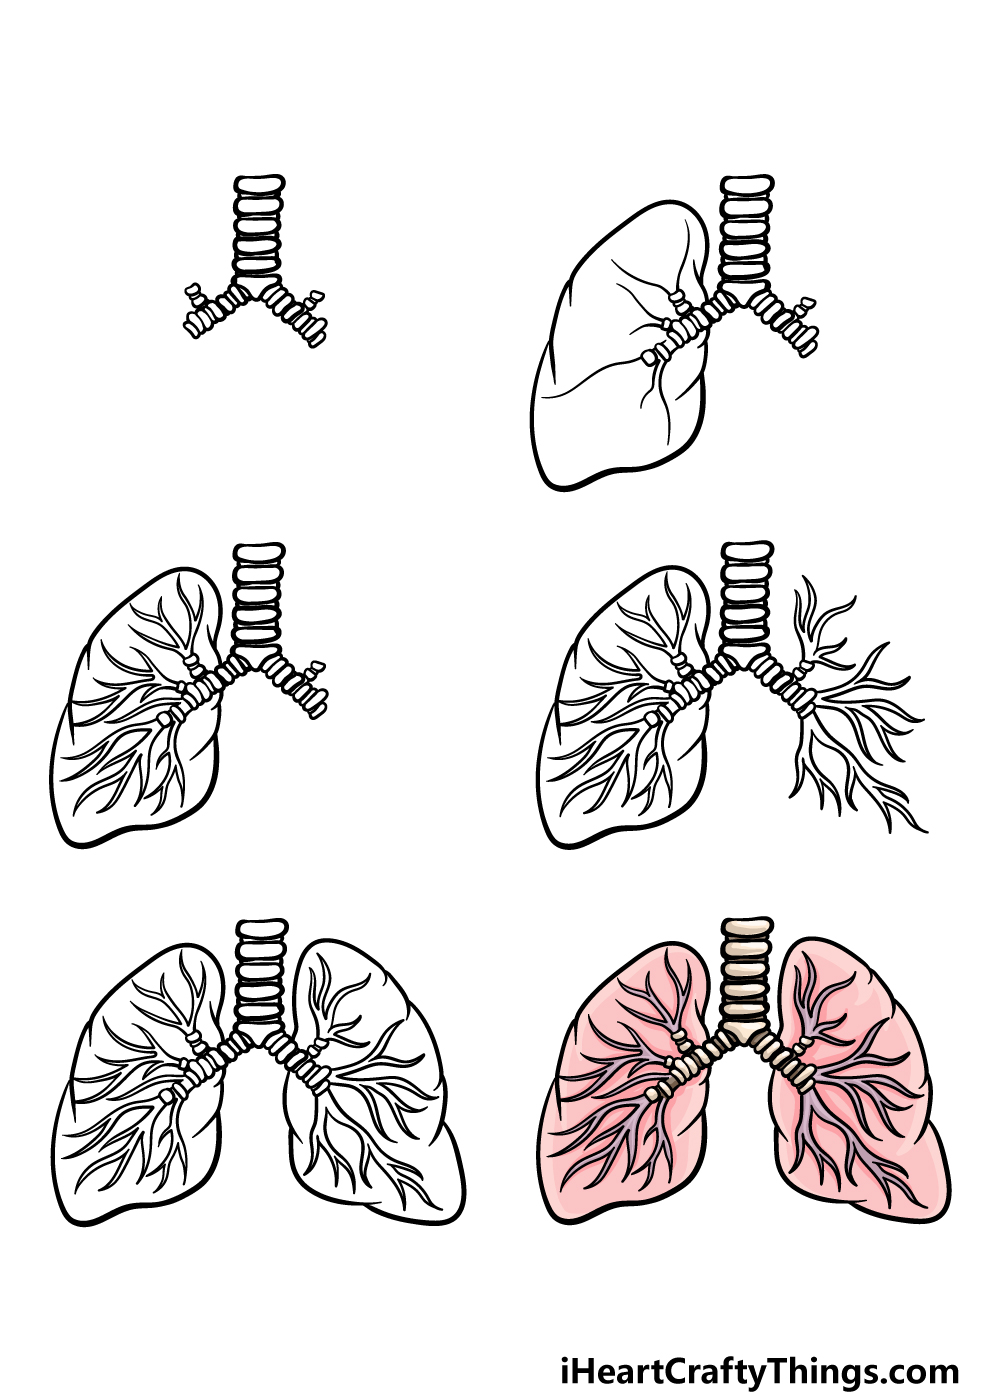 how to draw lungs in 6 steps